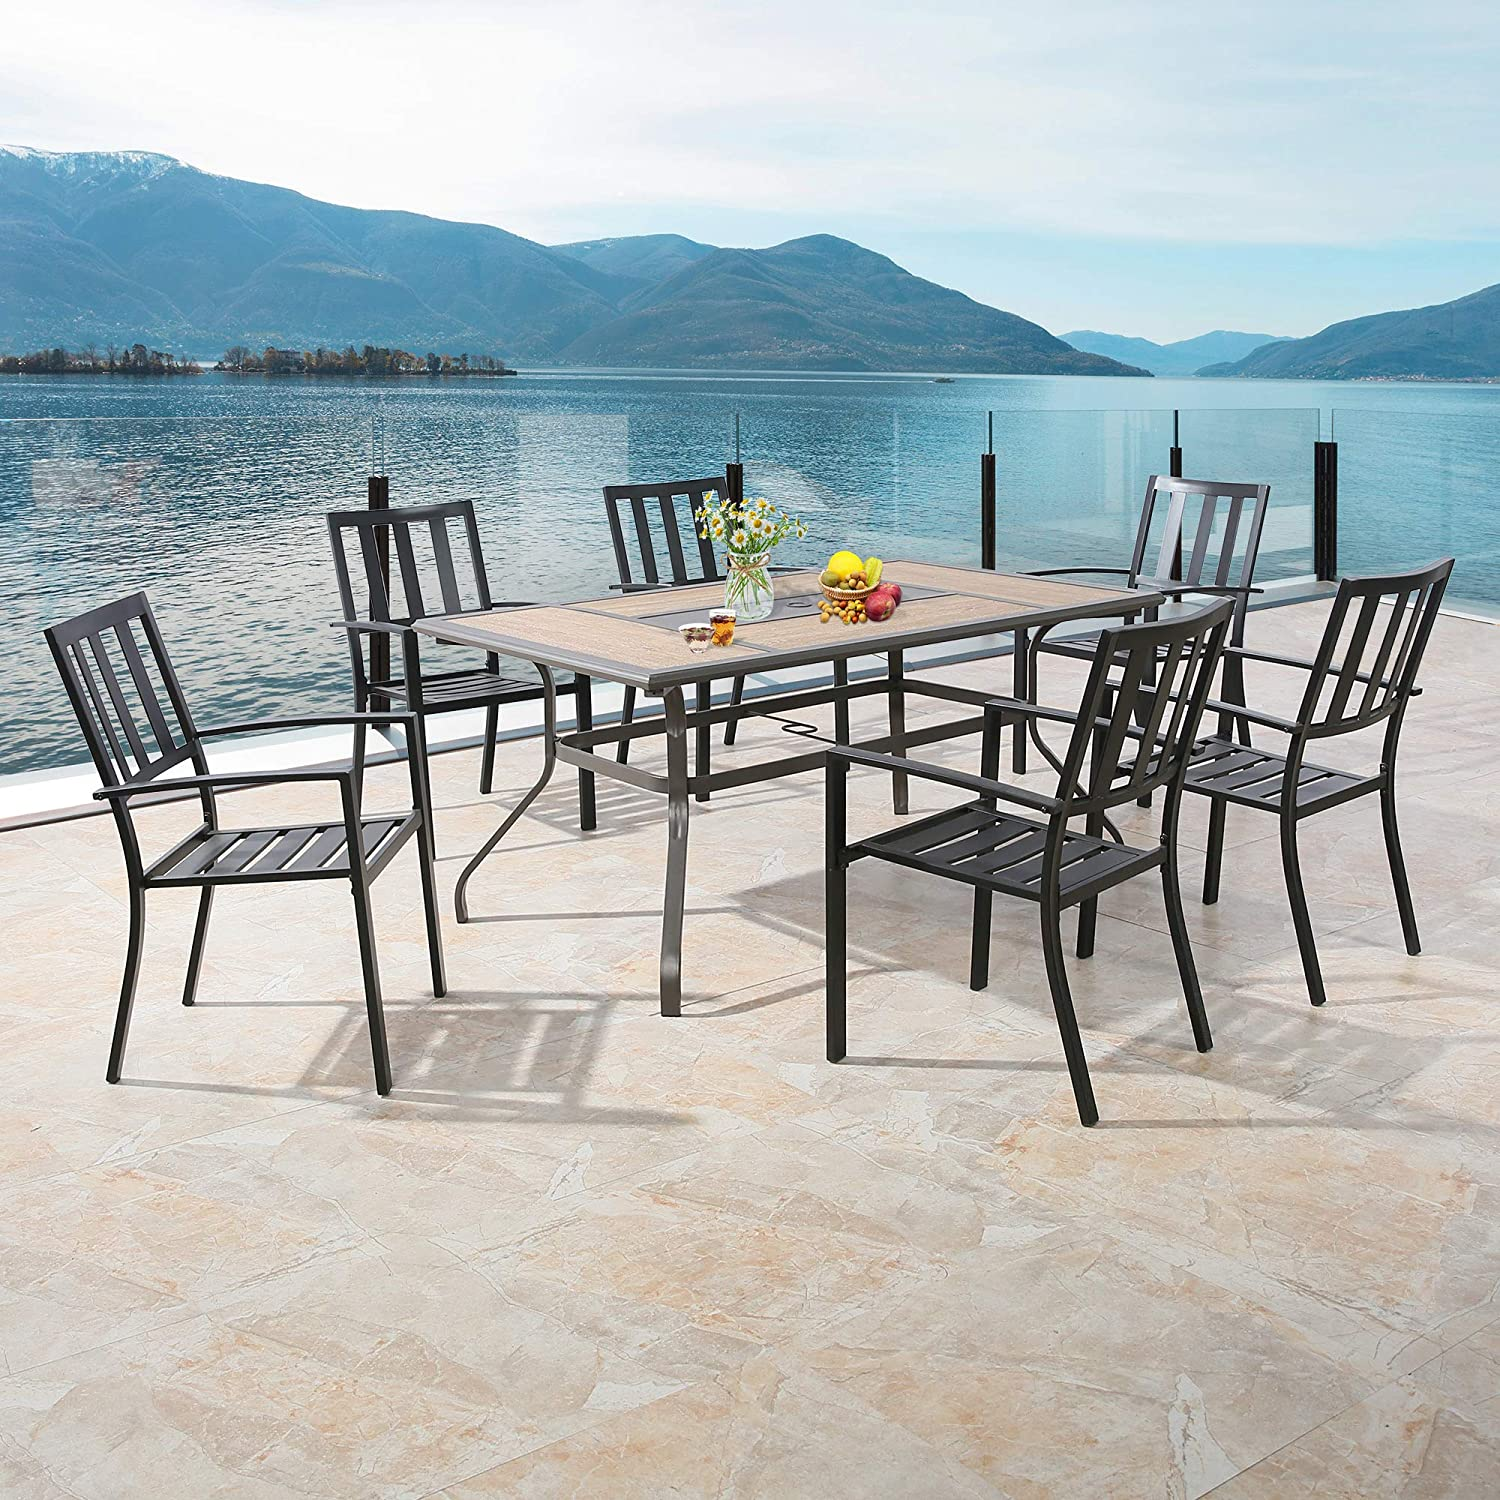 PATIO TREE Outdoor Dining Table with Wooden-Like Top Patio Rectangular Heavy-Duty Steel Frame Garden Table with Umbrella Hole